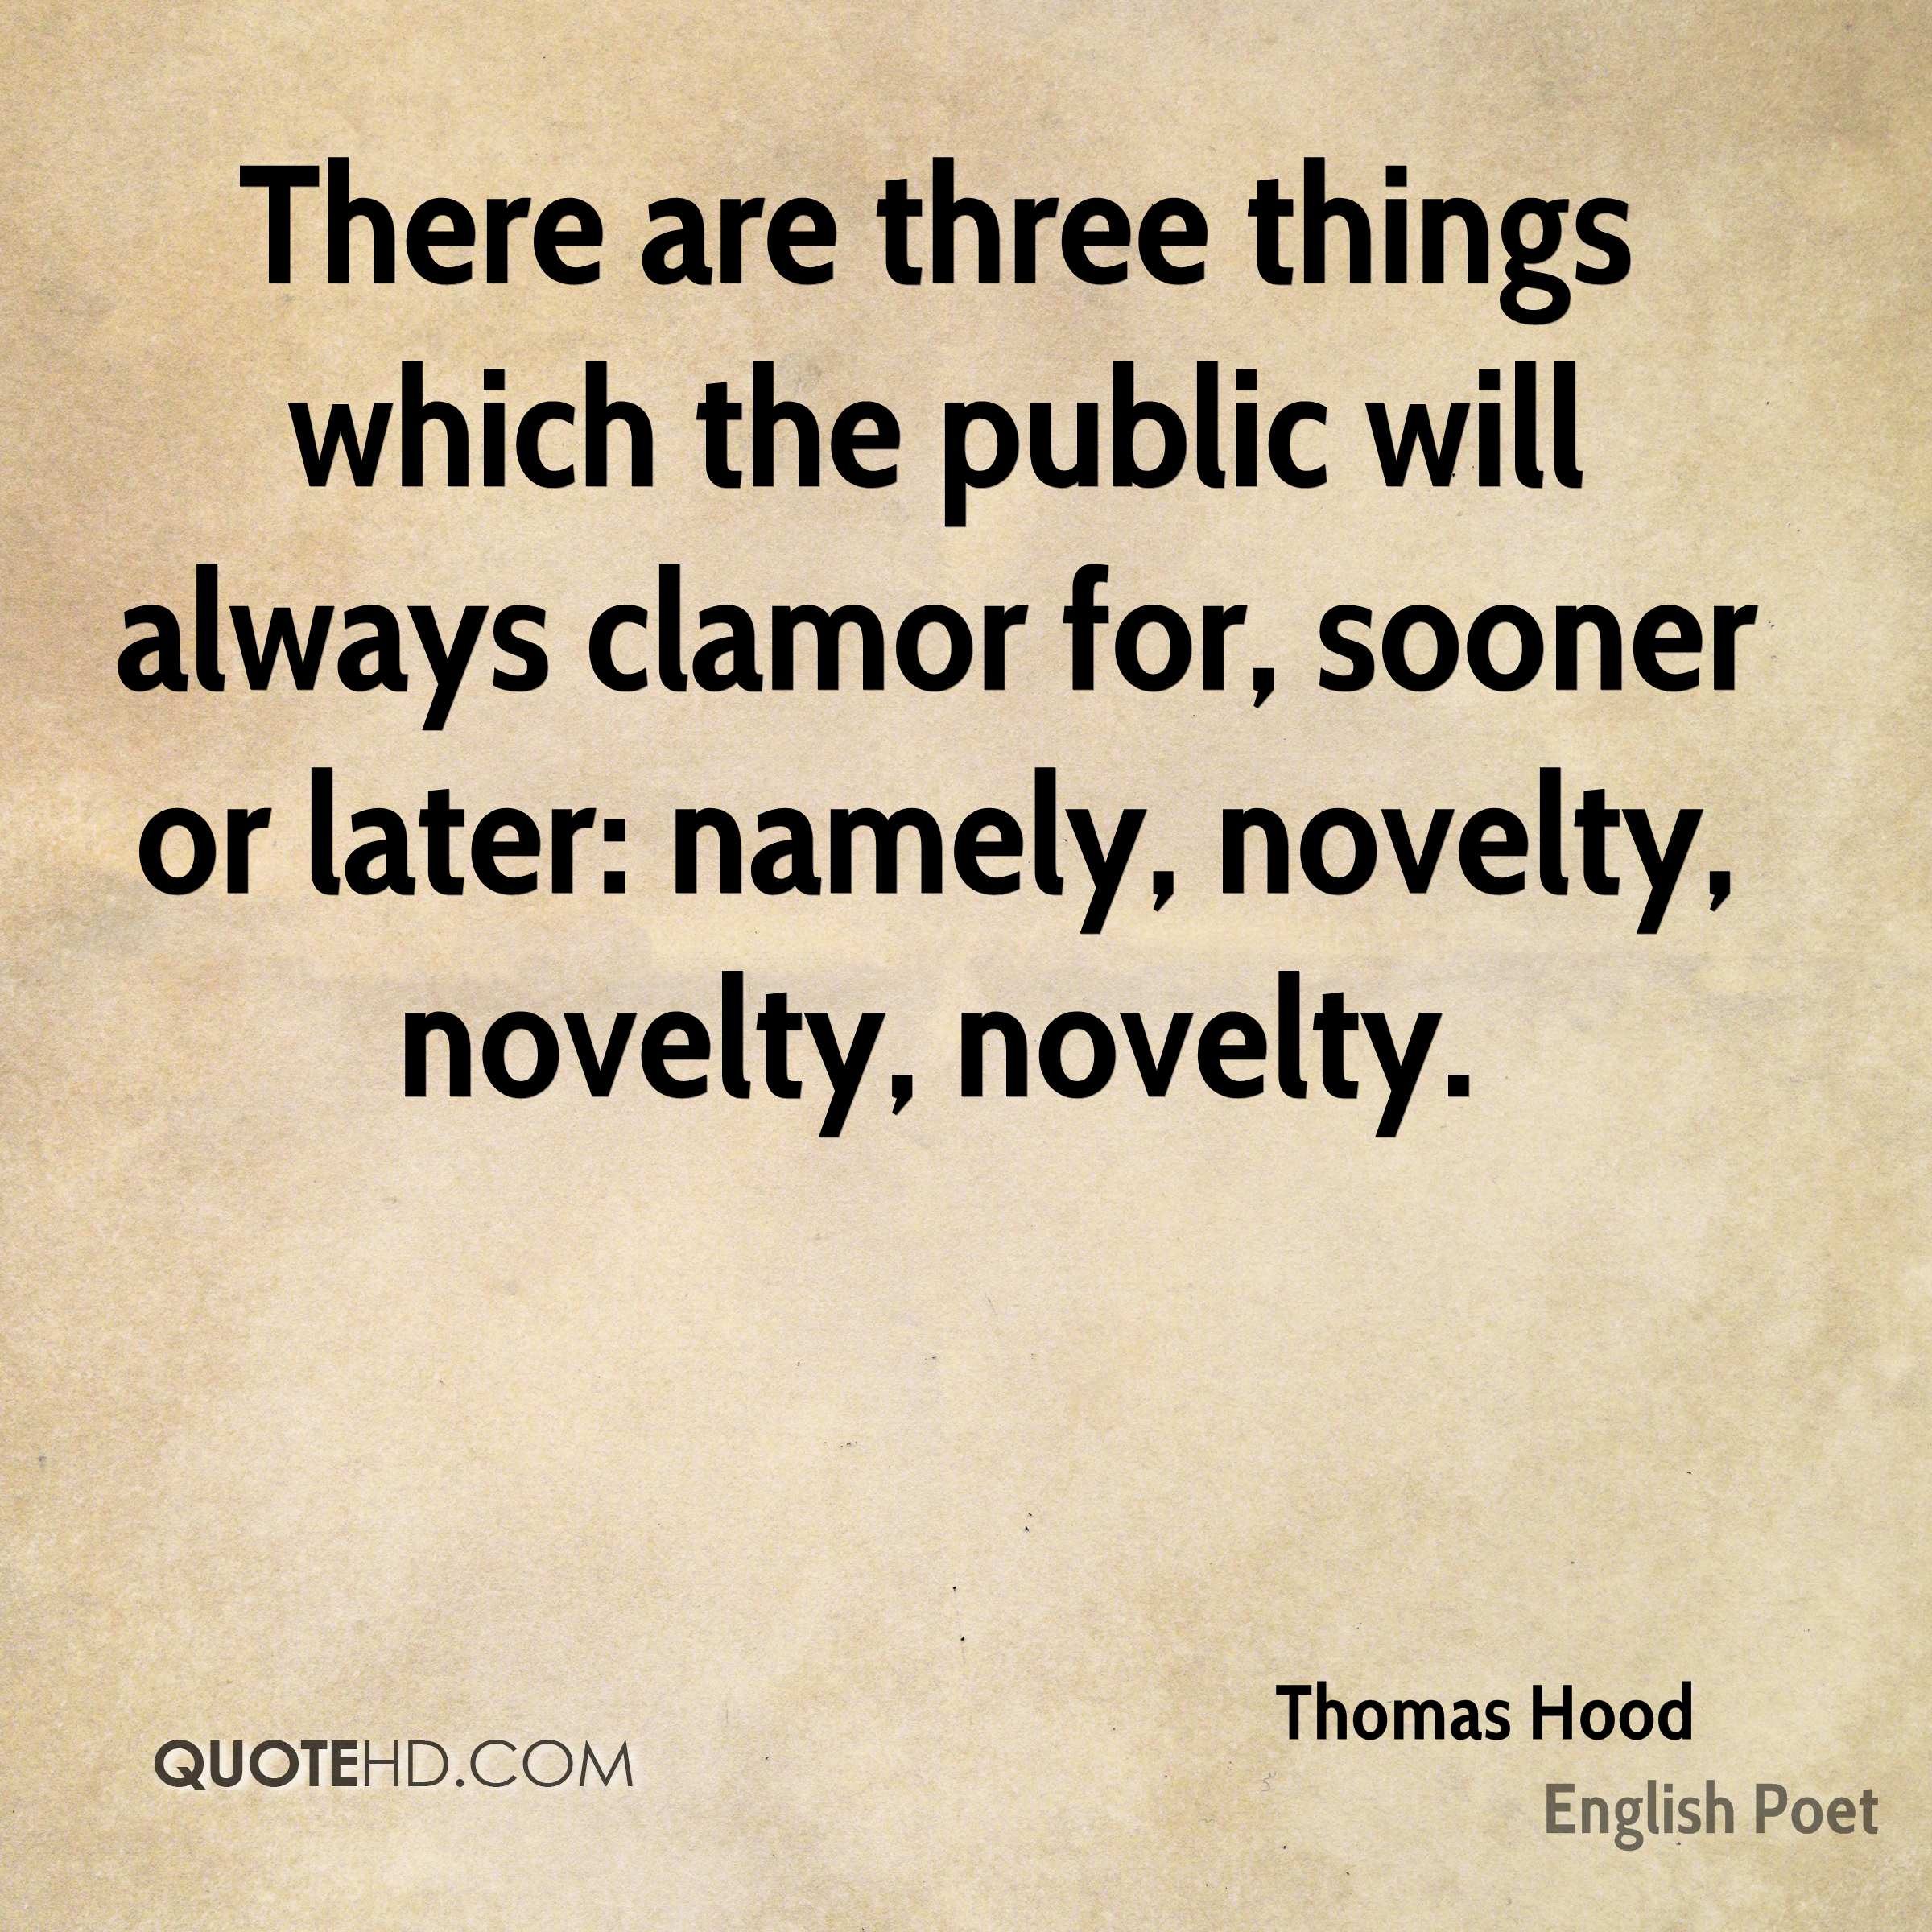 There are three things which the public will always clamor for, sooner or later: namely, novelty, novelty, novelty.